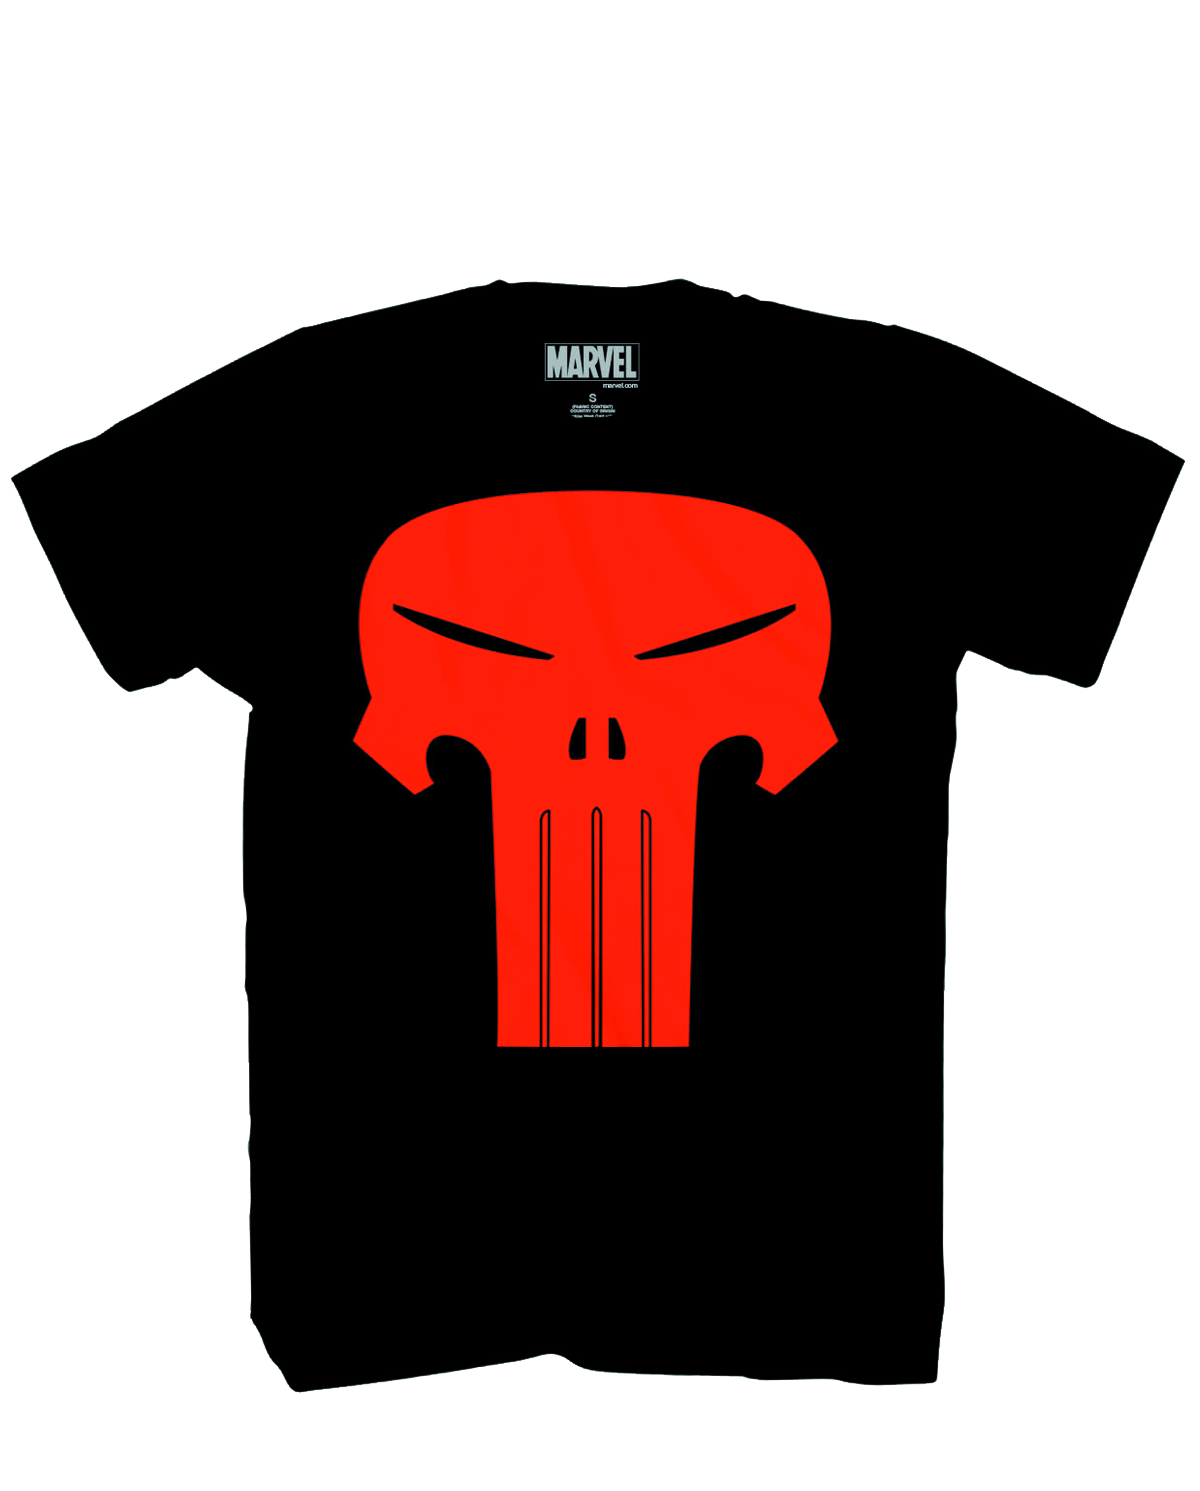 MARVEL PUNISHER SKINNY SKULL PX BLK T/S MED